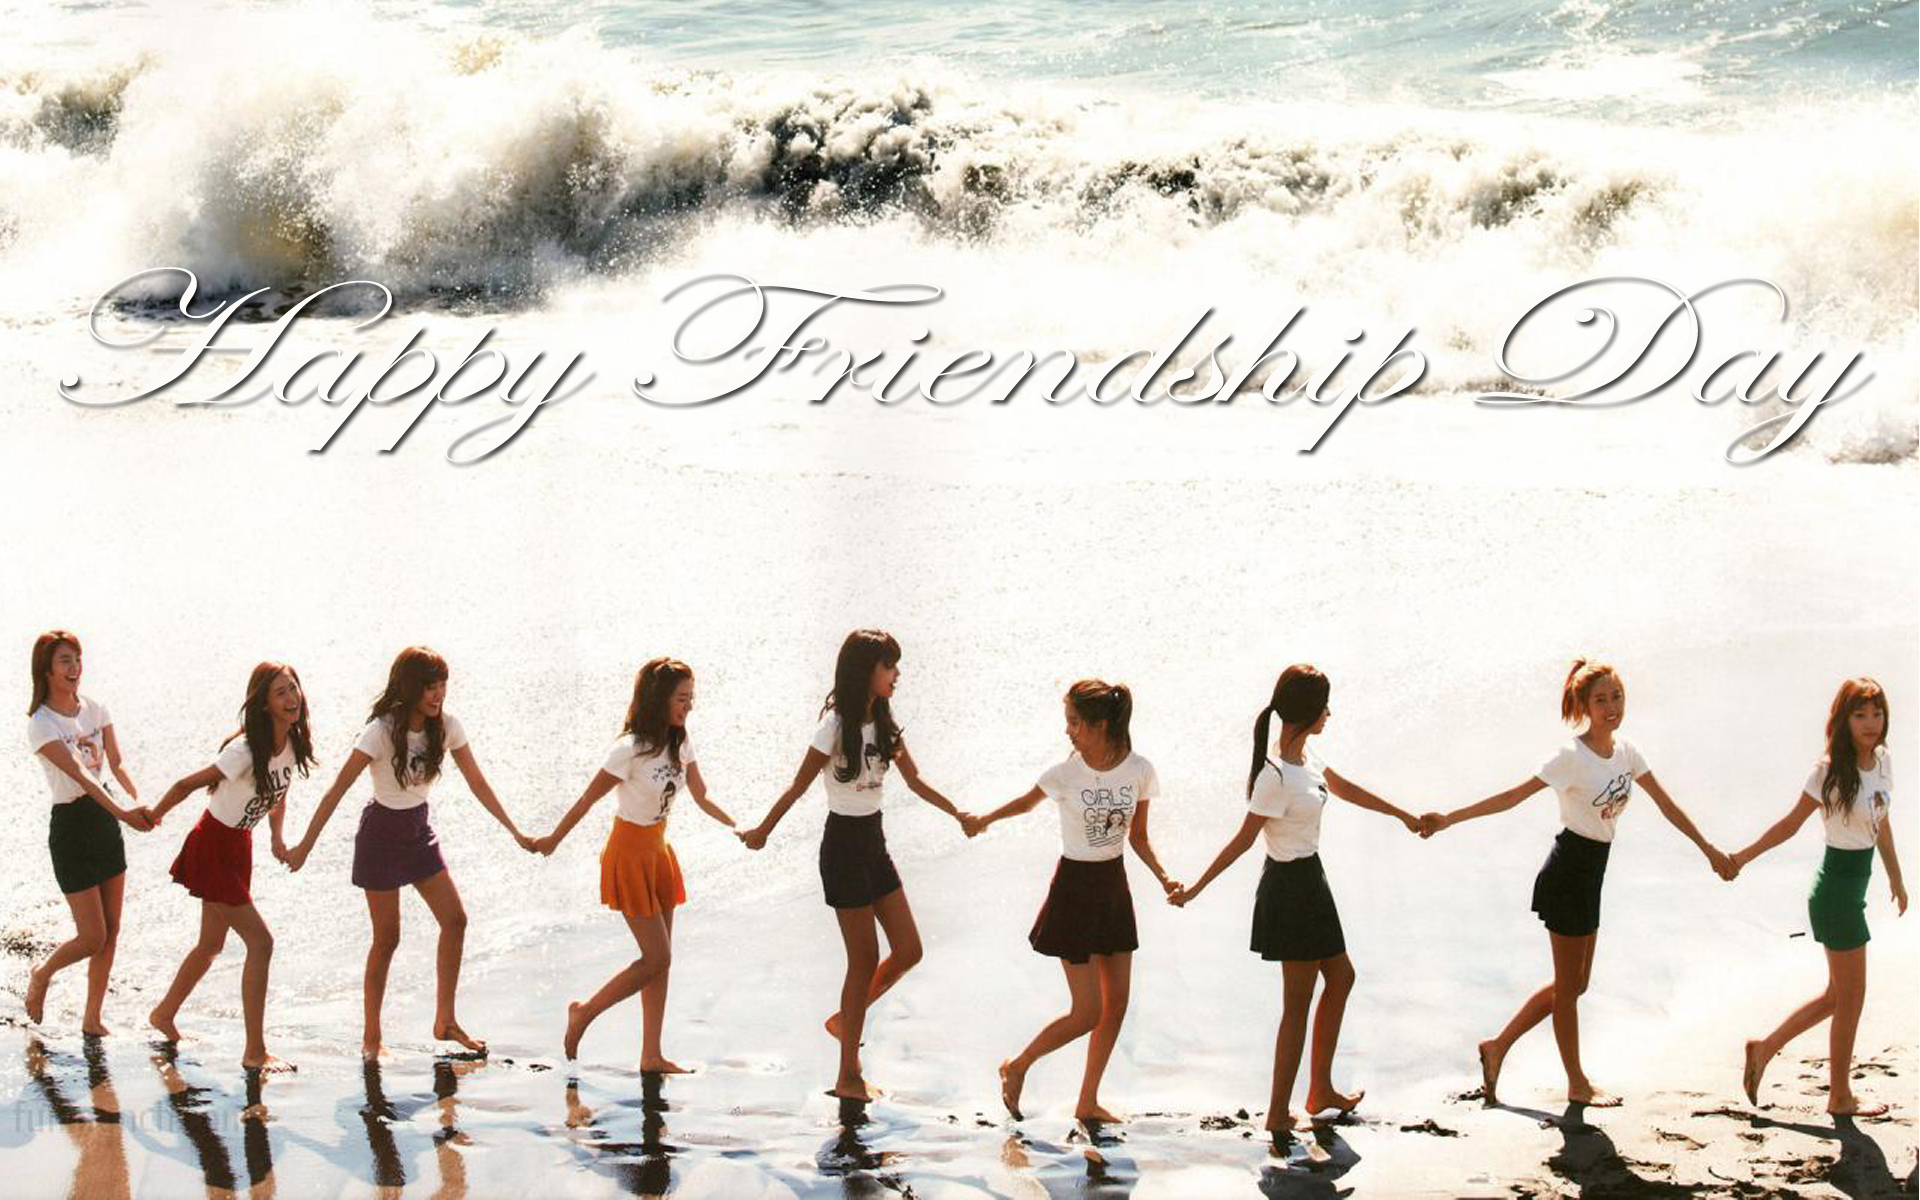 beautiful friendship day wallpapers